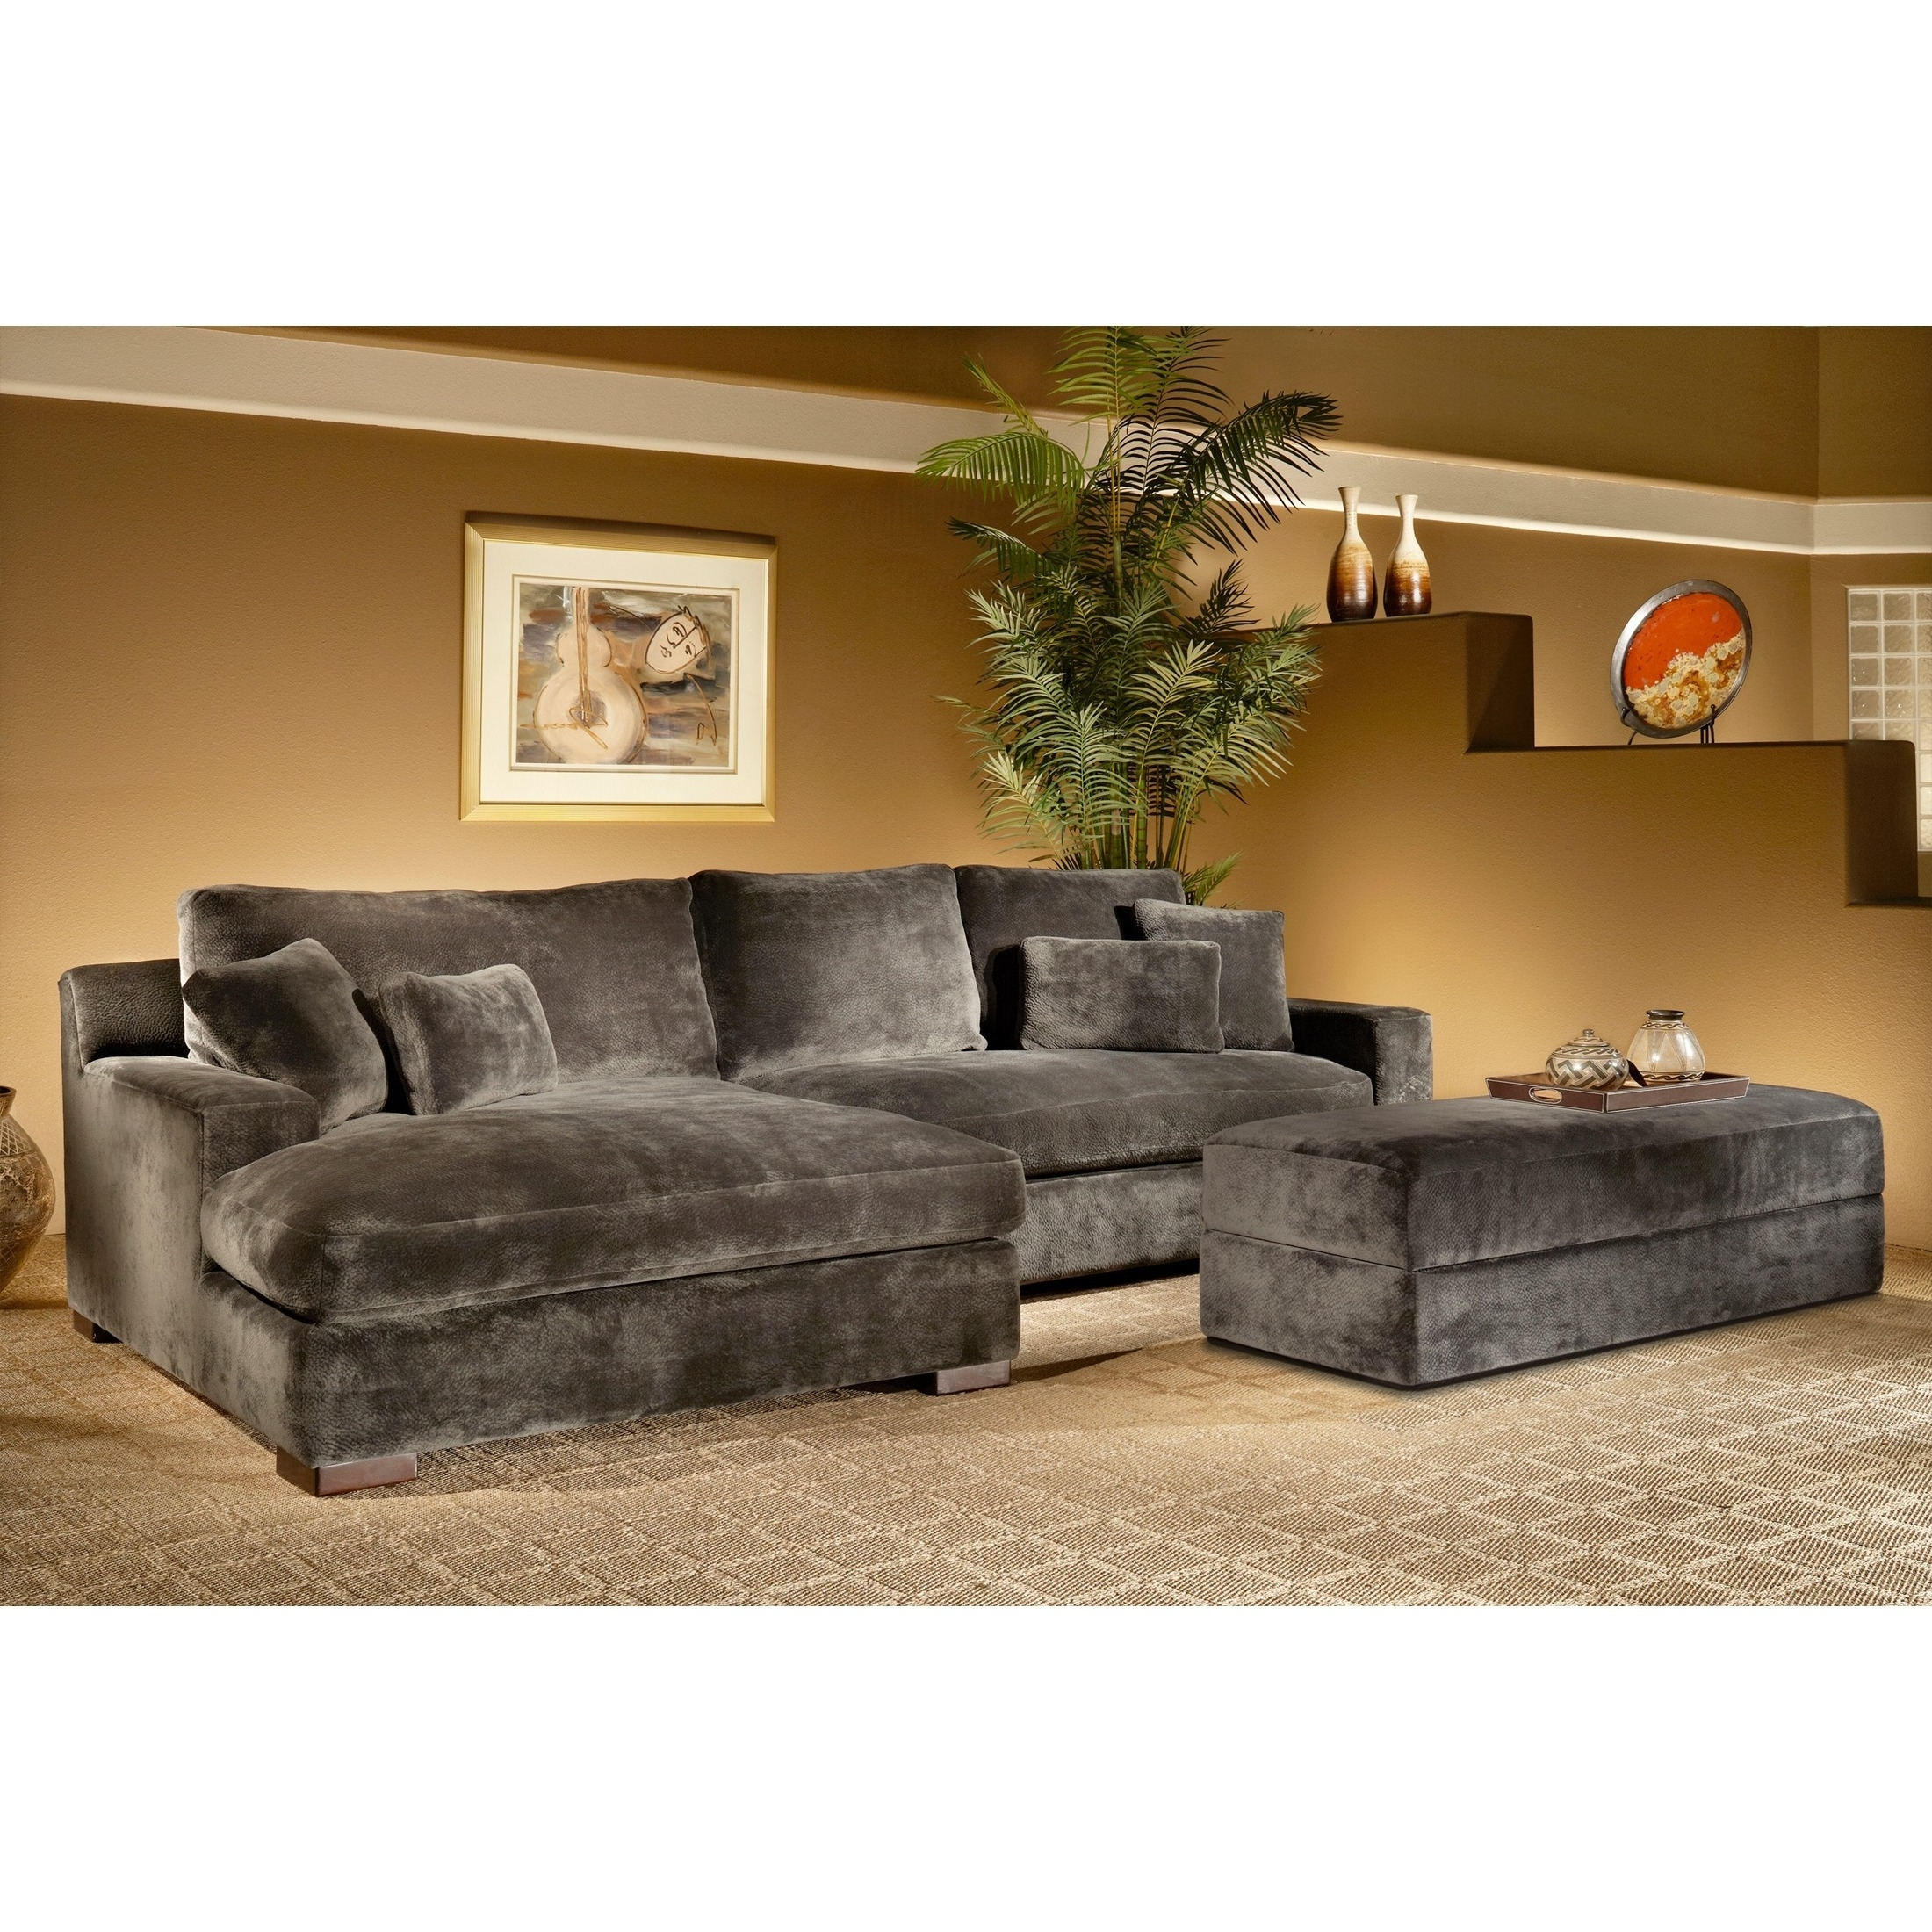 Wide Seat Sectional Sofas Inside Well Known The Doris 3 Piece Smoke Sectional Sofa With Storage Ottoman Is (View 4 of 15)